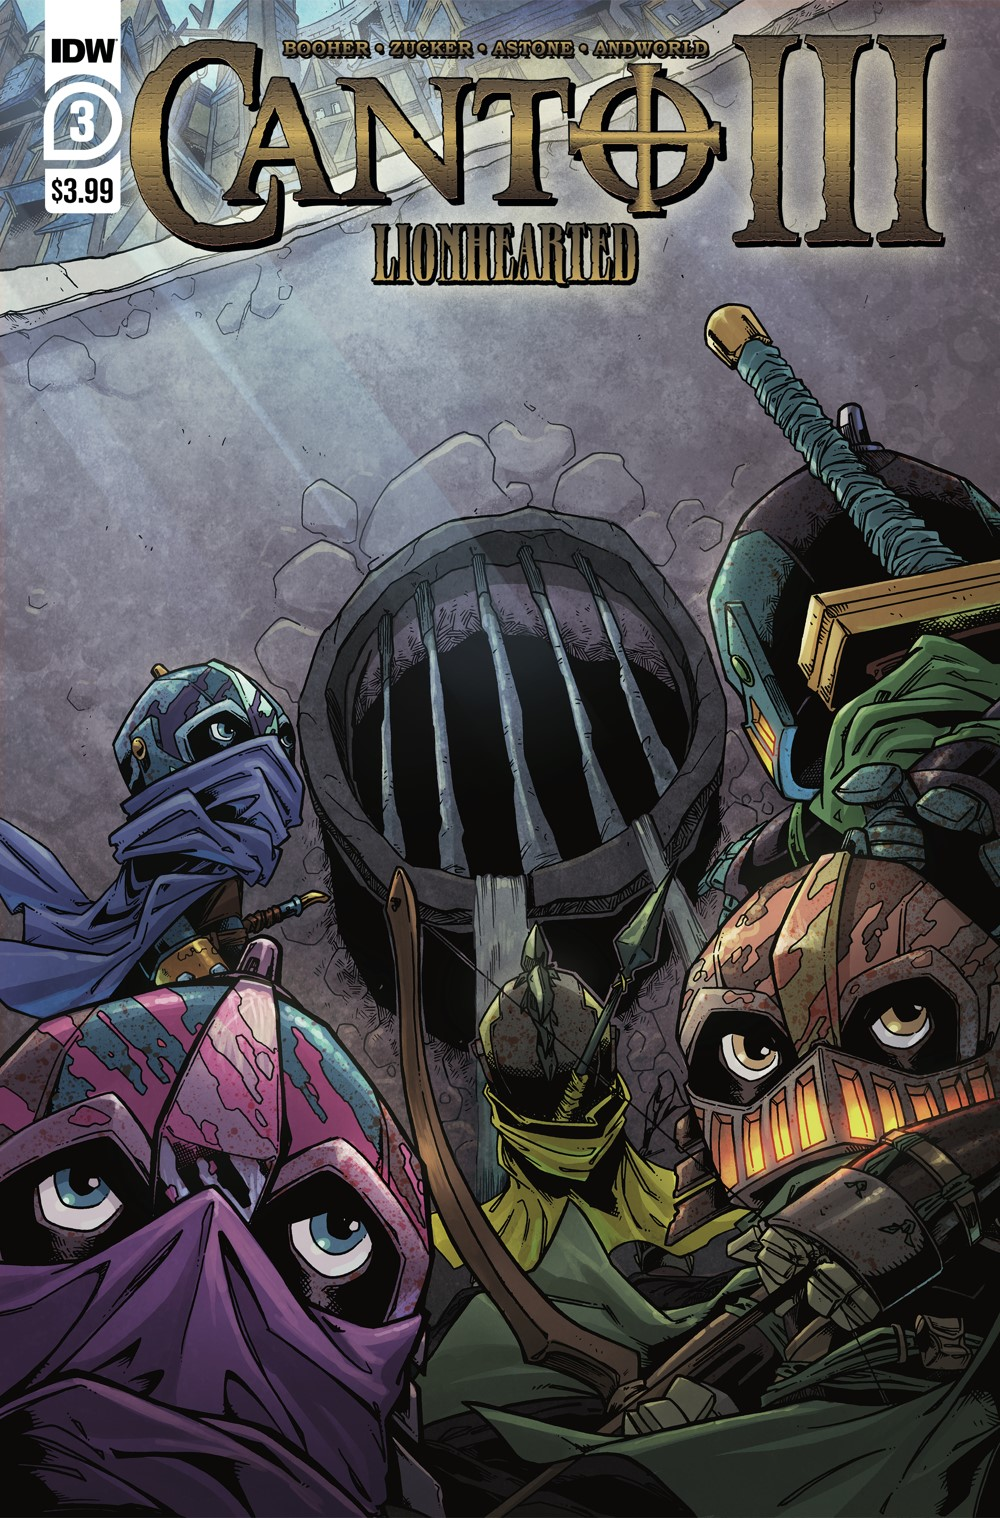 Canto-Lionhearted03_cvrA ComicList: IDW Publishing New Releases for 09/08/2021